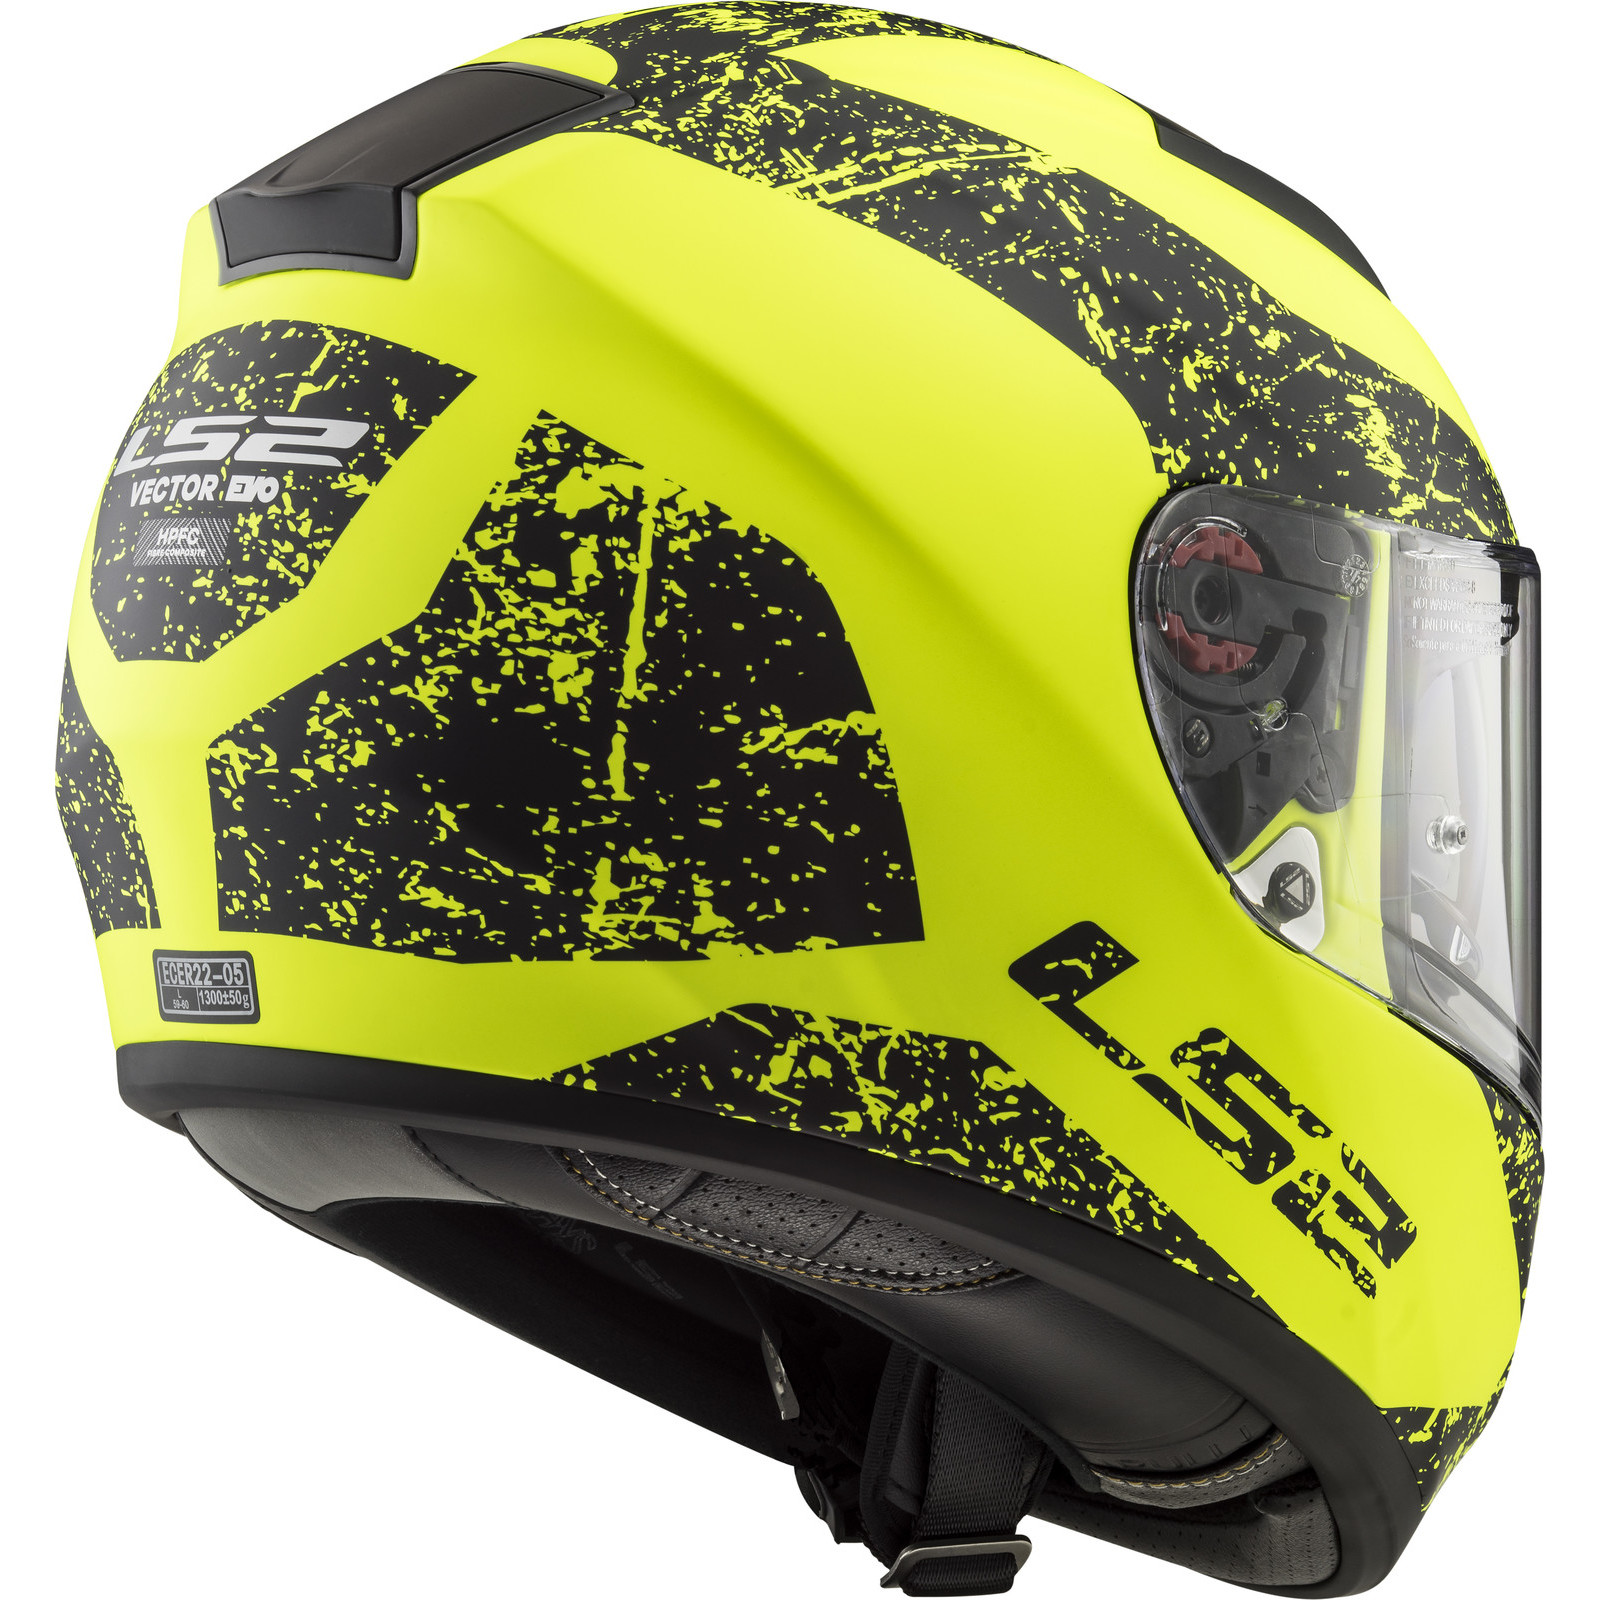 Helmet LS2 397 VECTOR (SIGN Matt Yellow Black)